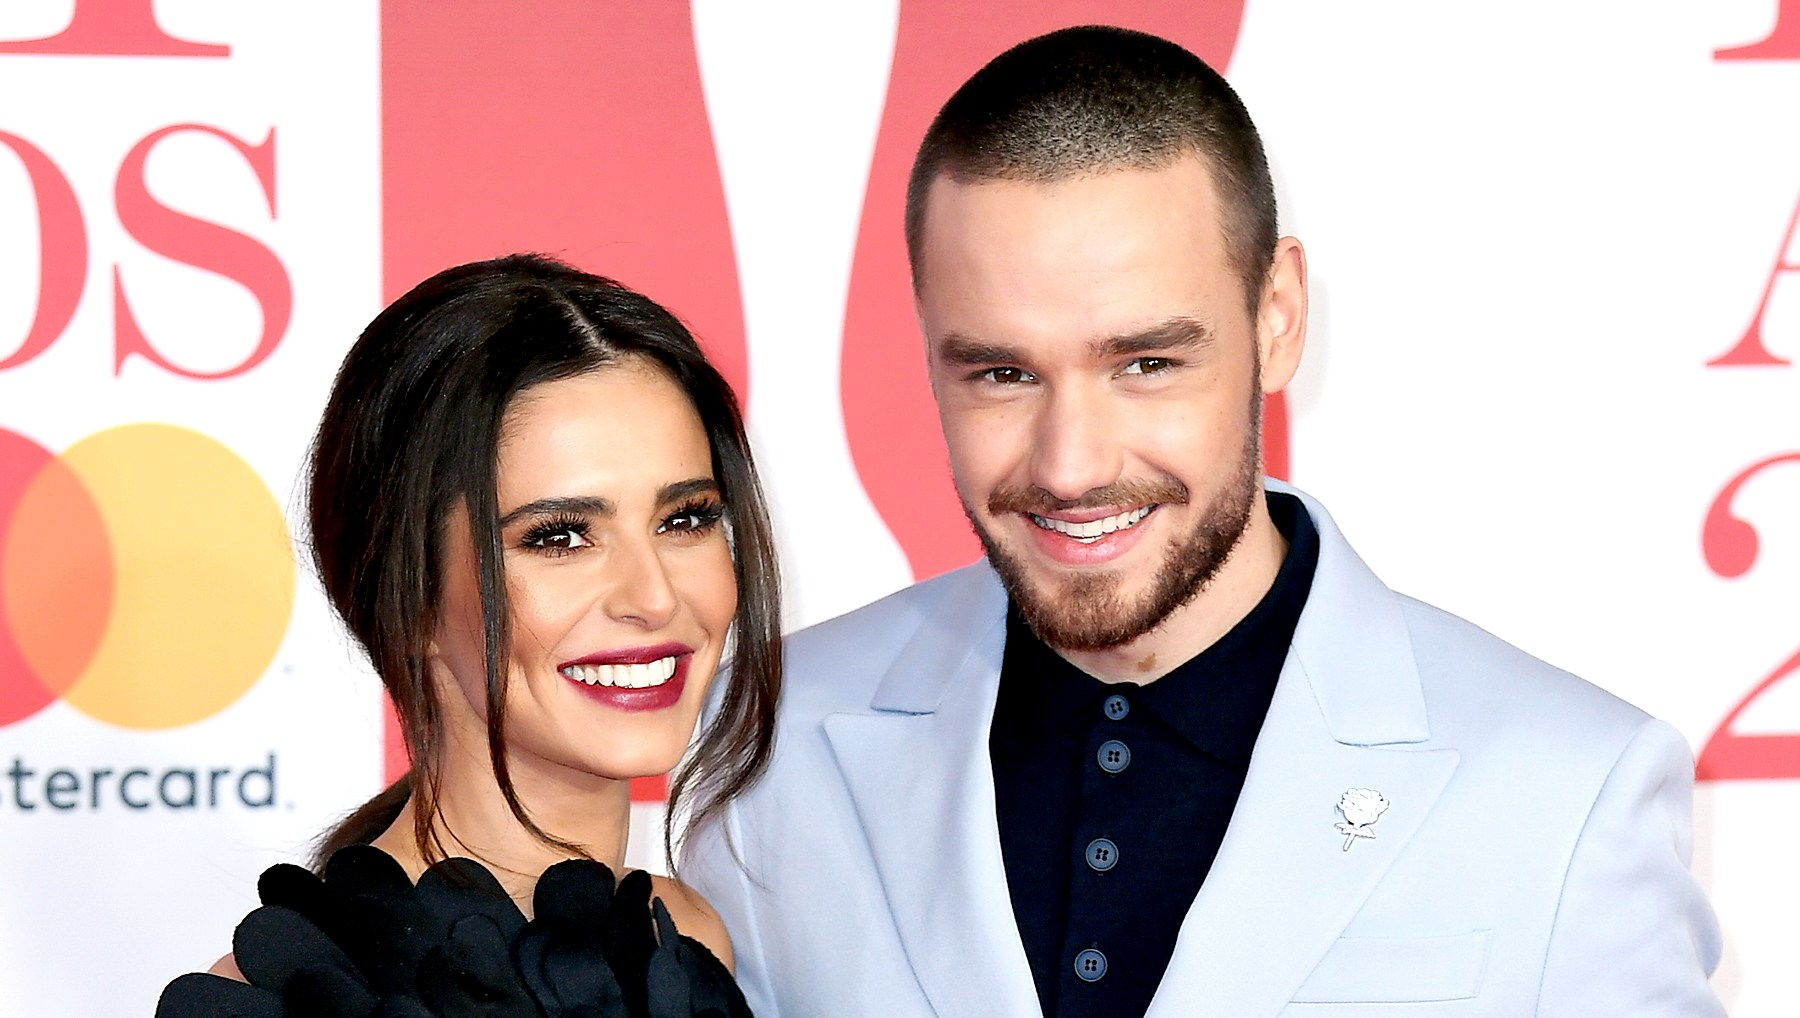 Cheryl-Cole-and-Liam-Payne